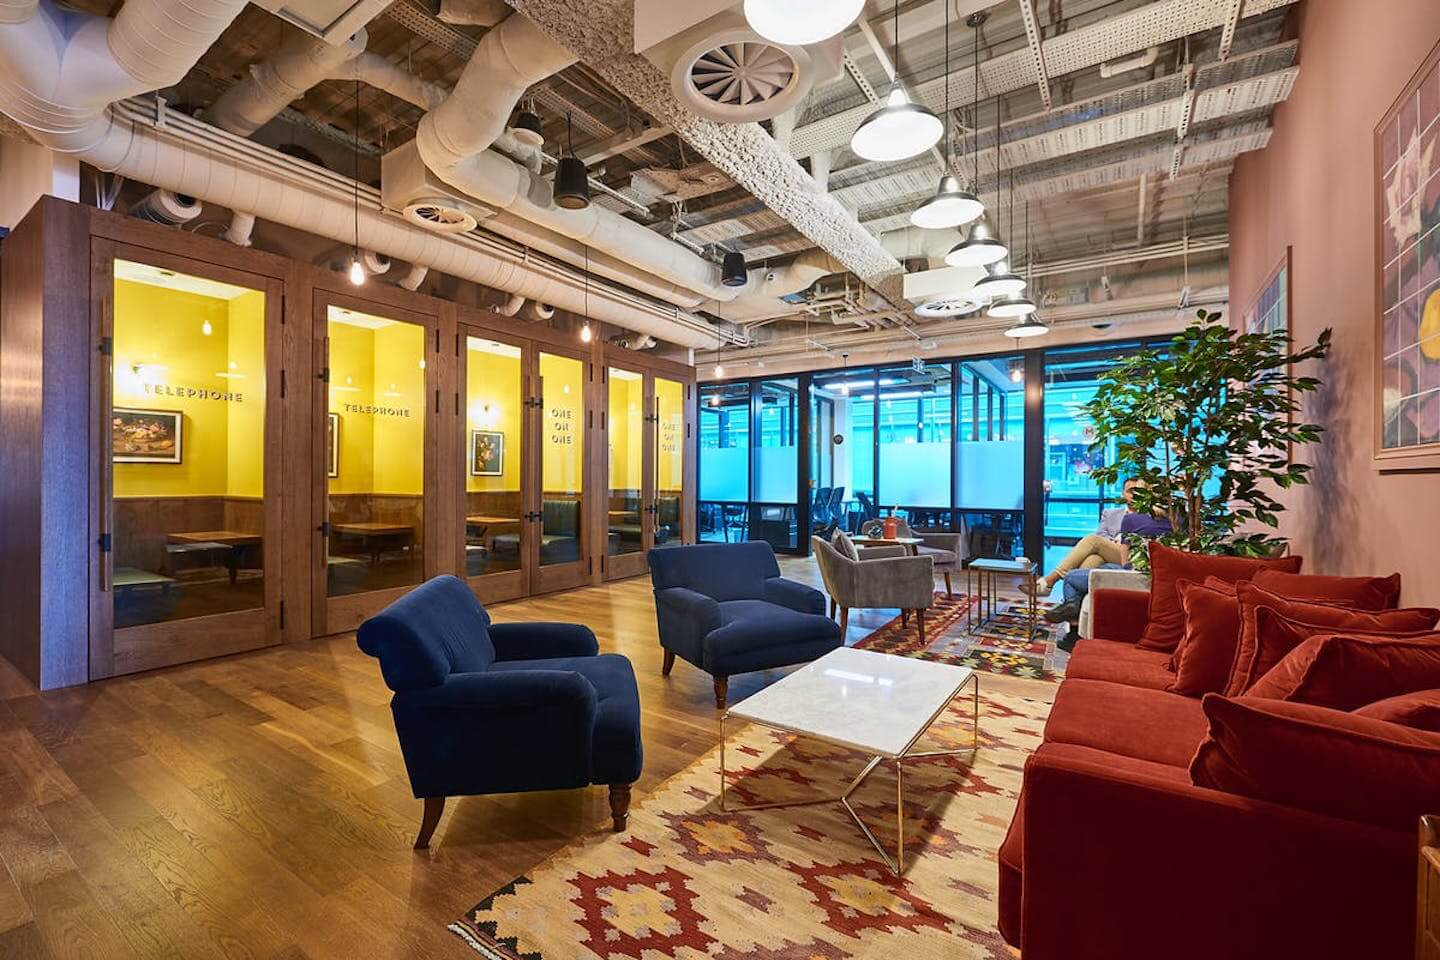 Flexible workspace provider Mindspace, offers collaborative co-working space and serviced offices for startups, SME's and Corporates to rent in the heart of Tech City on Appold Street, just a hop away from Silicon Roundabout.